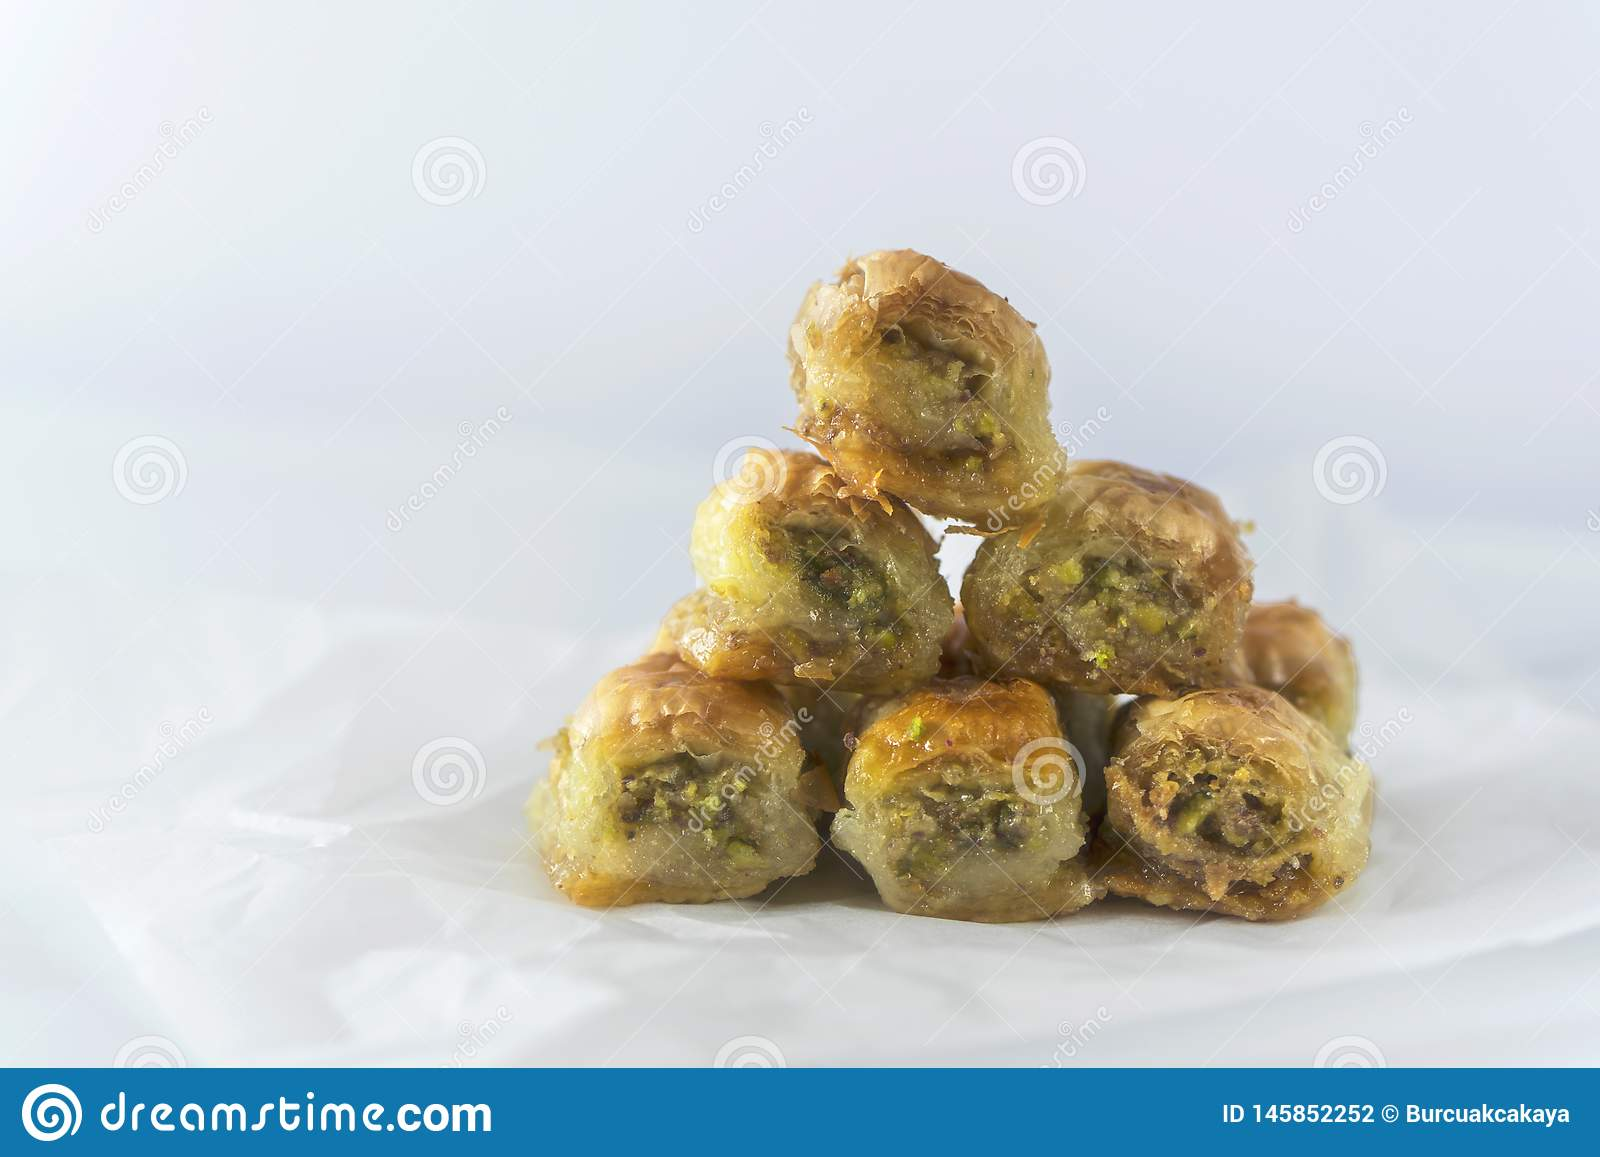 Turkish traditional dessert Baklava on a backing paper, close up, isolated